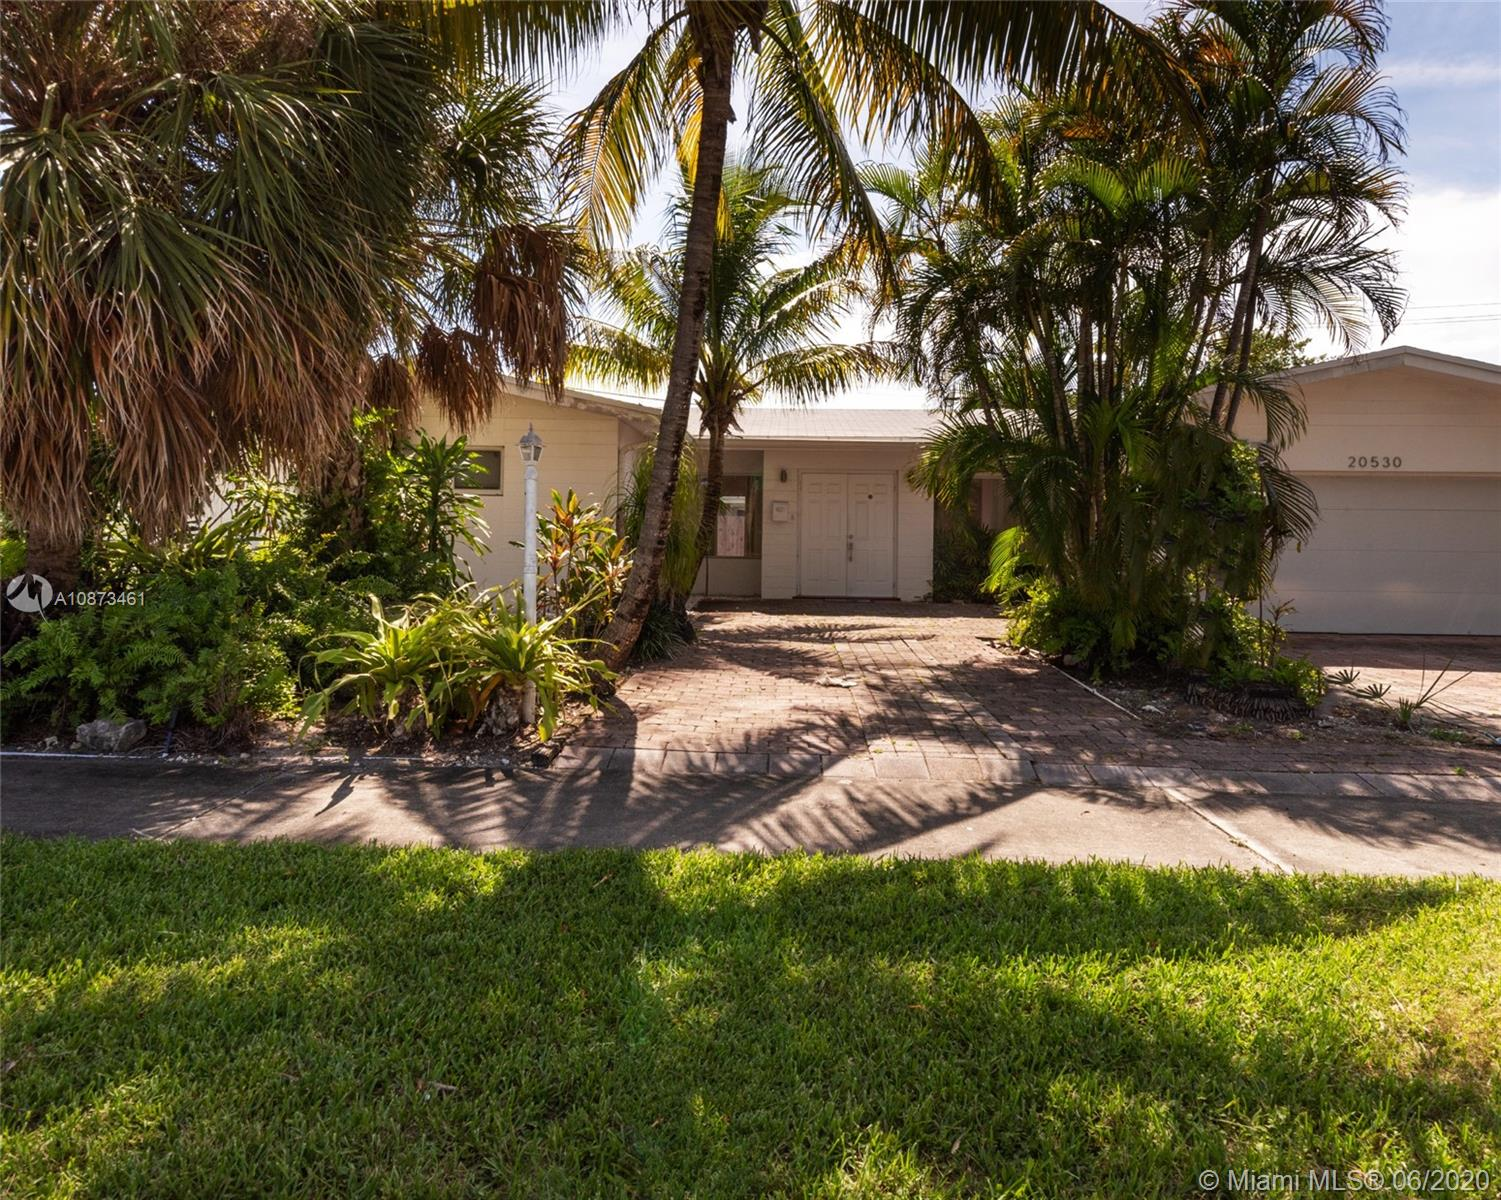 20530  Highland Lakes Blvd #20530 For Sale A10873461, FL